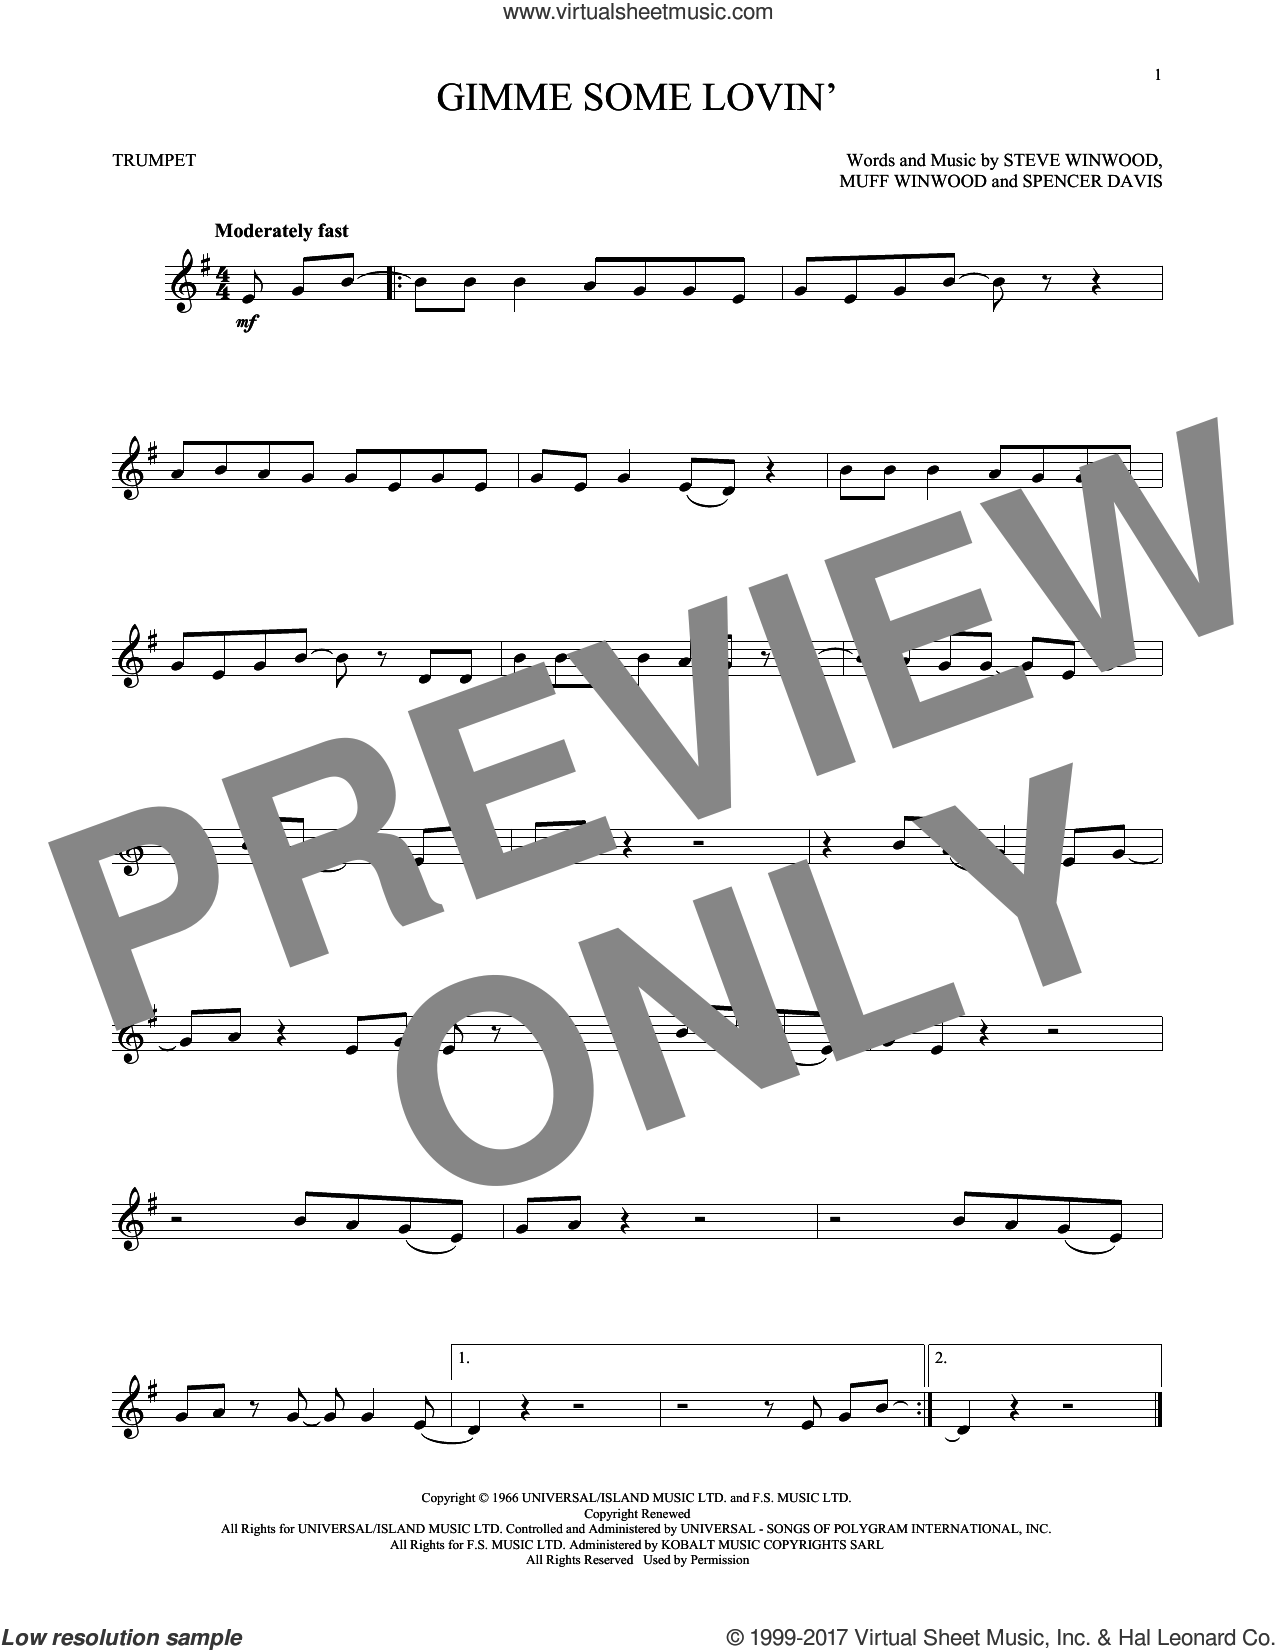 Gimme Some Lovin' sheet music for trumpet solo by The Spencer Davis Group, Muff Winwood, Spencer Davis and Steve Winwood, intermediate skill level